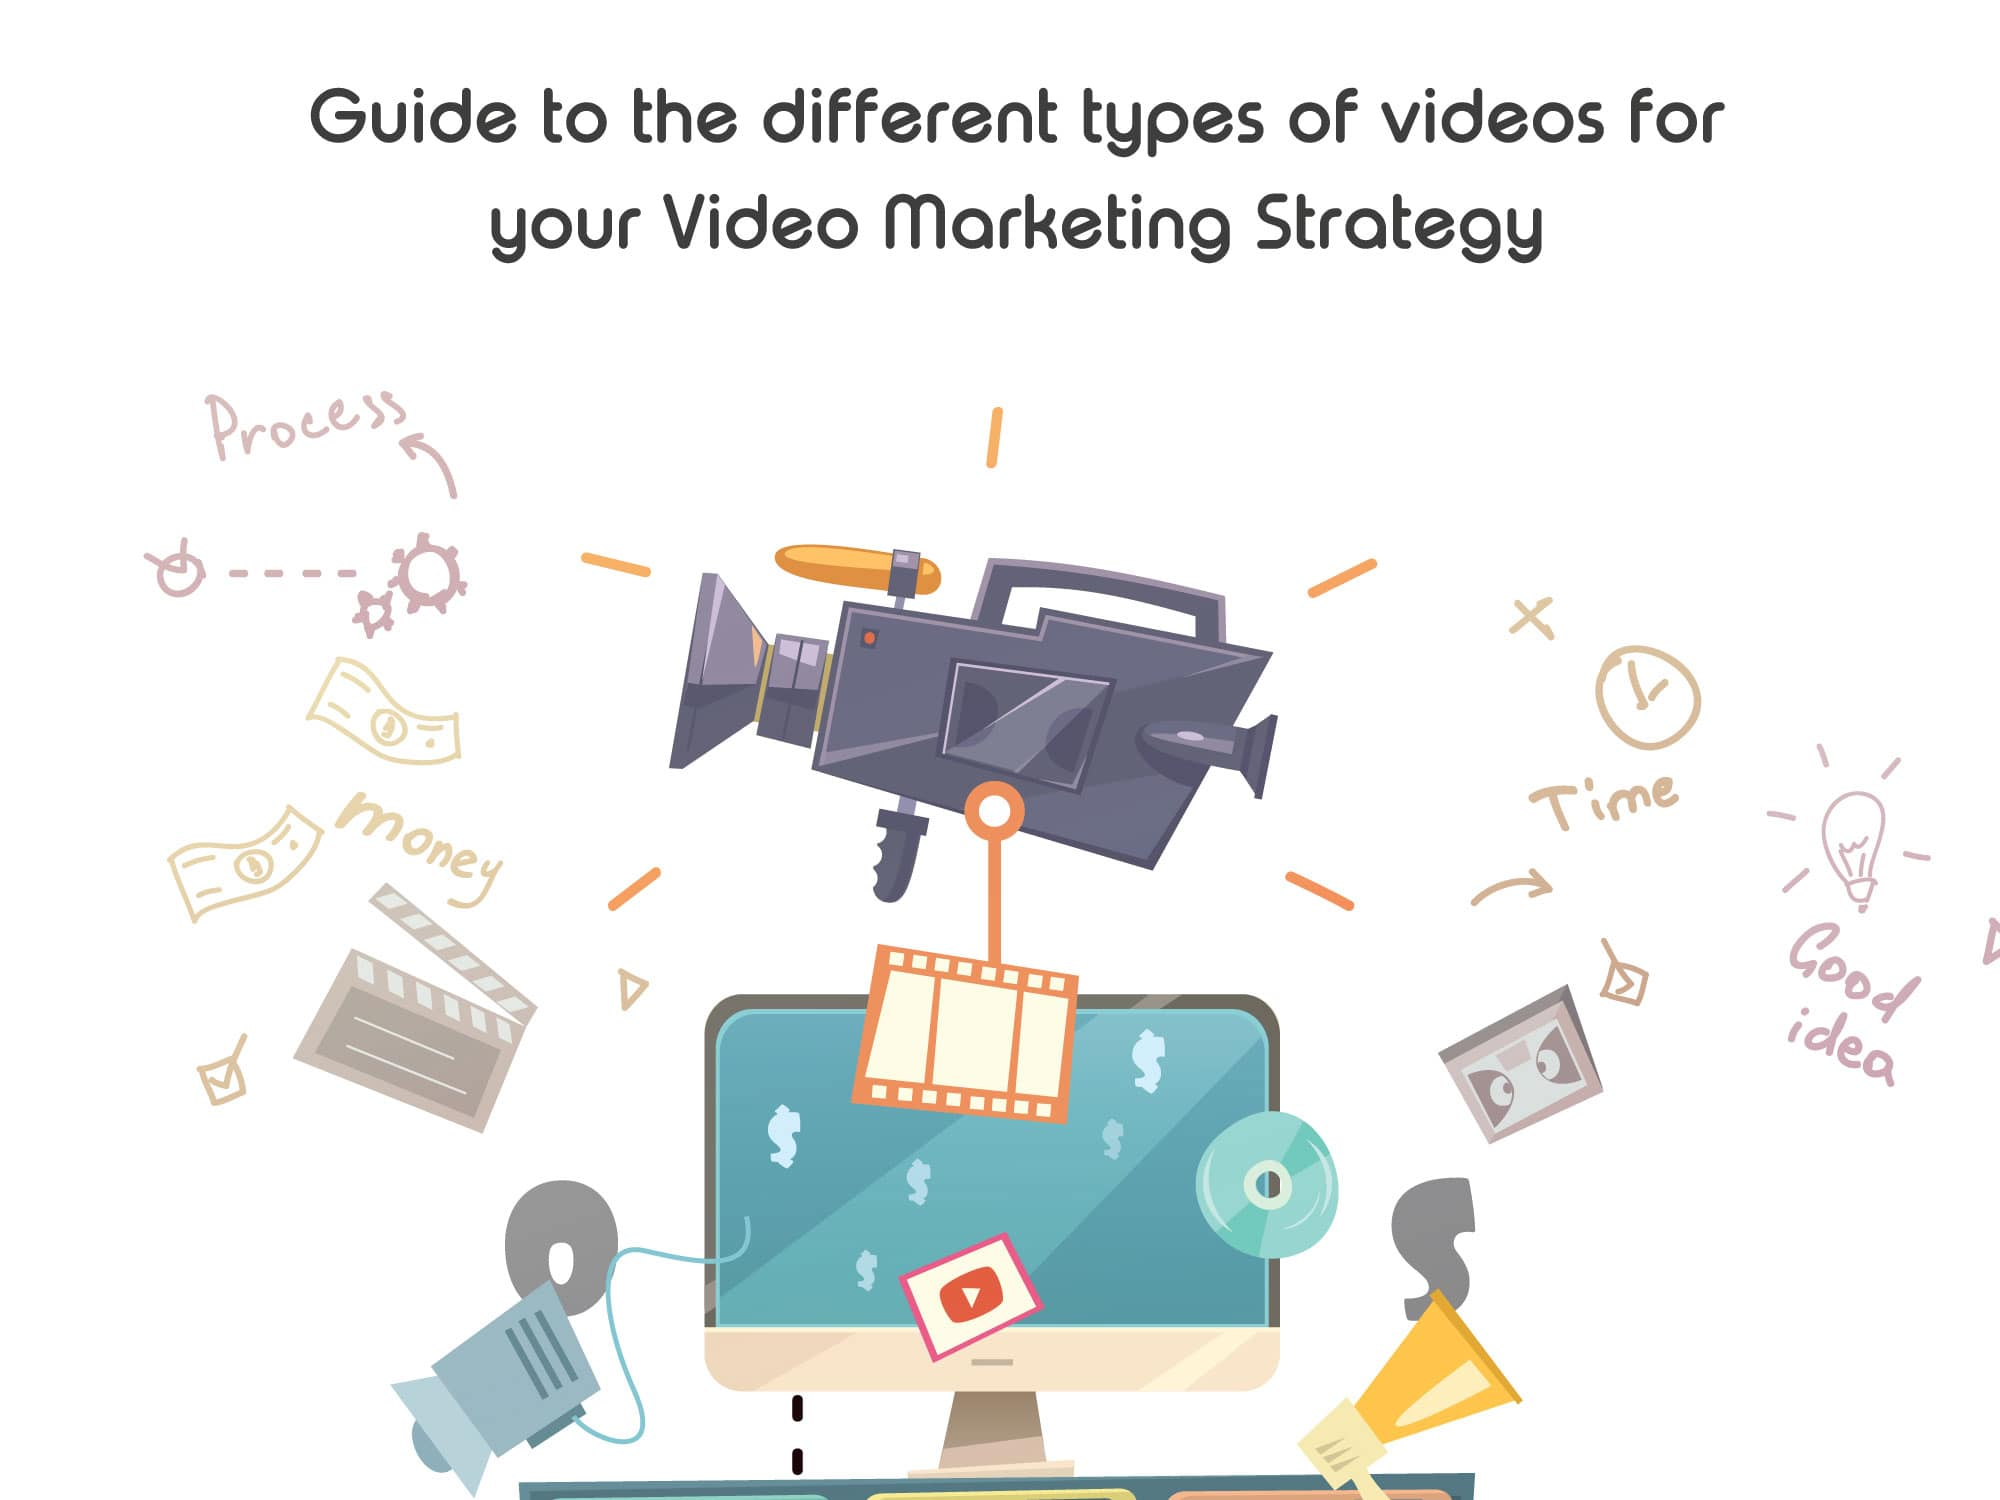 Your Guide to Viral Vids: The Best Types of Videos for Your Video Marketing Strategy